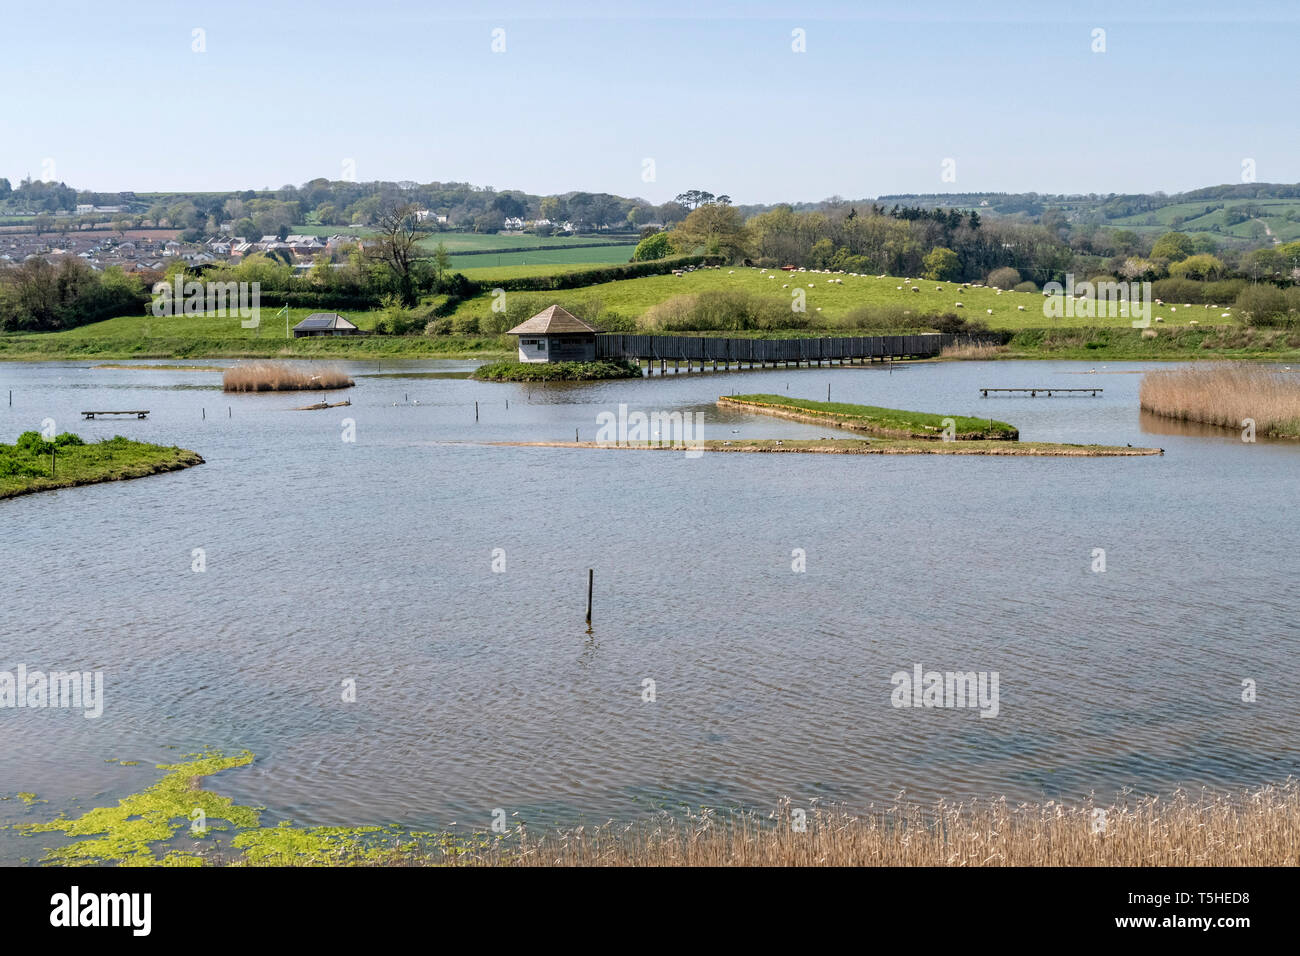 Seaton wetlands, sitting beside the River Axe in the Axe valley, Devon, England, UK Stock Photo